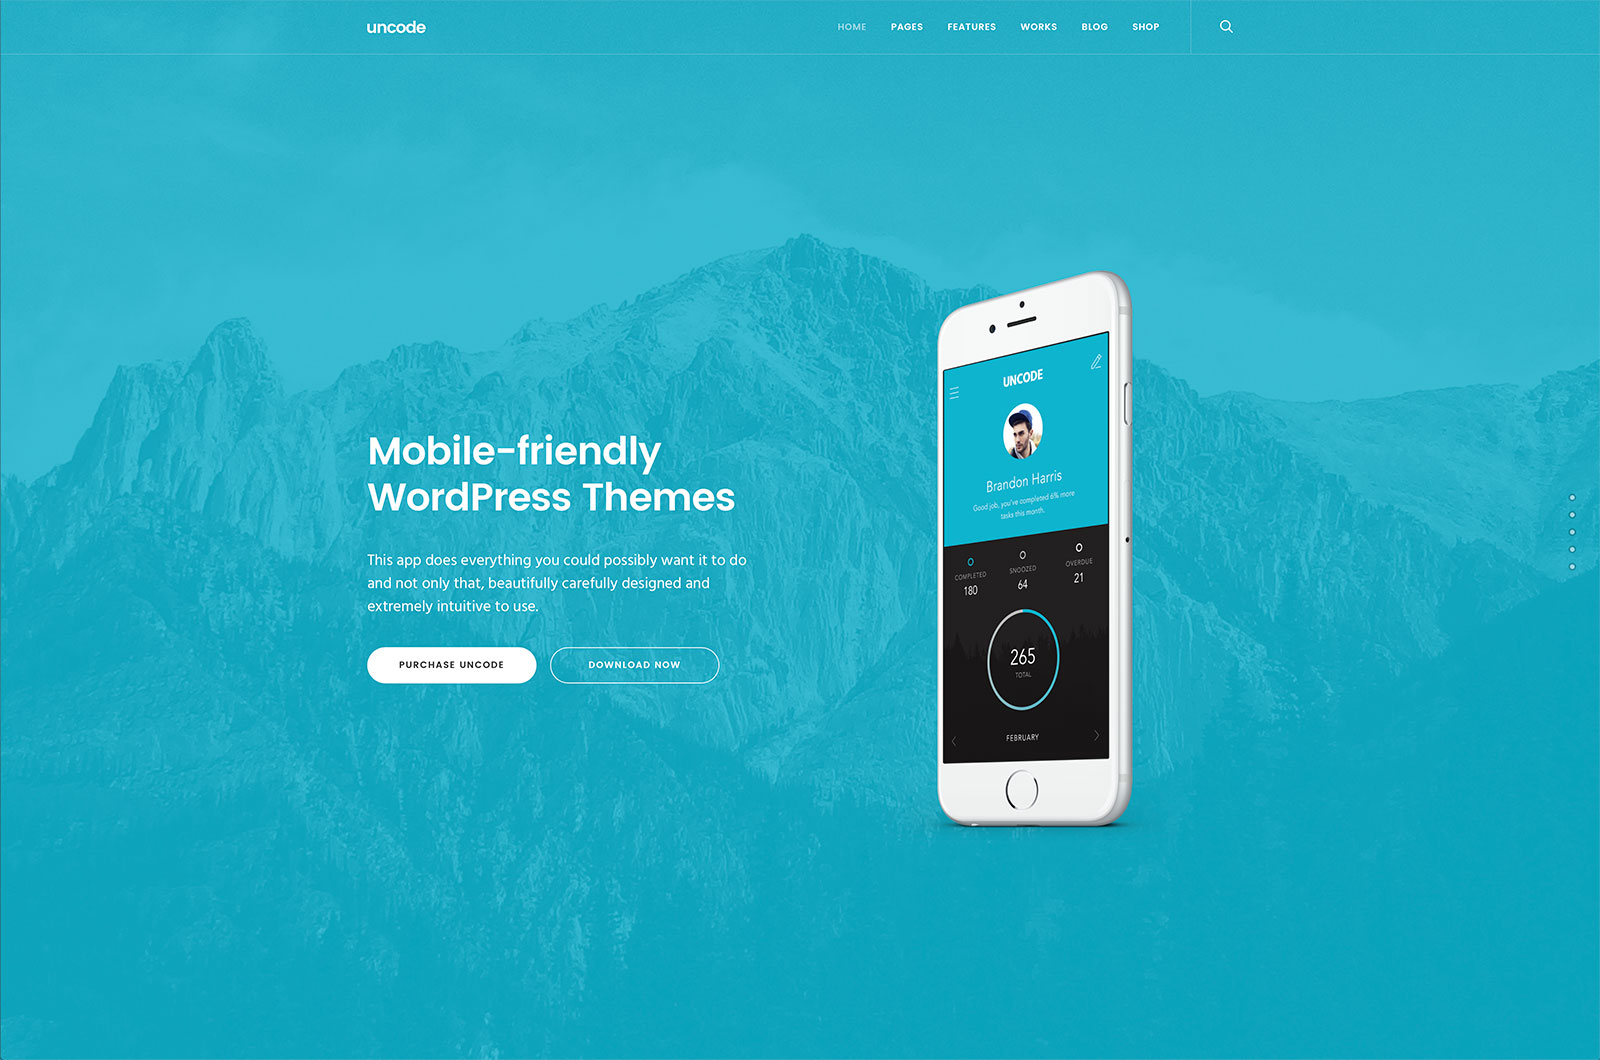 30+ Most Popular Mobile Friendly WordPress Themes 2019 - Colorlib